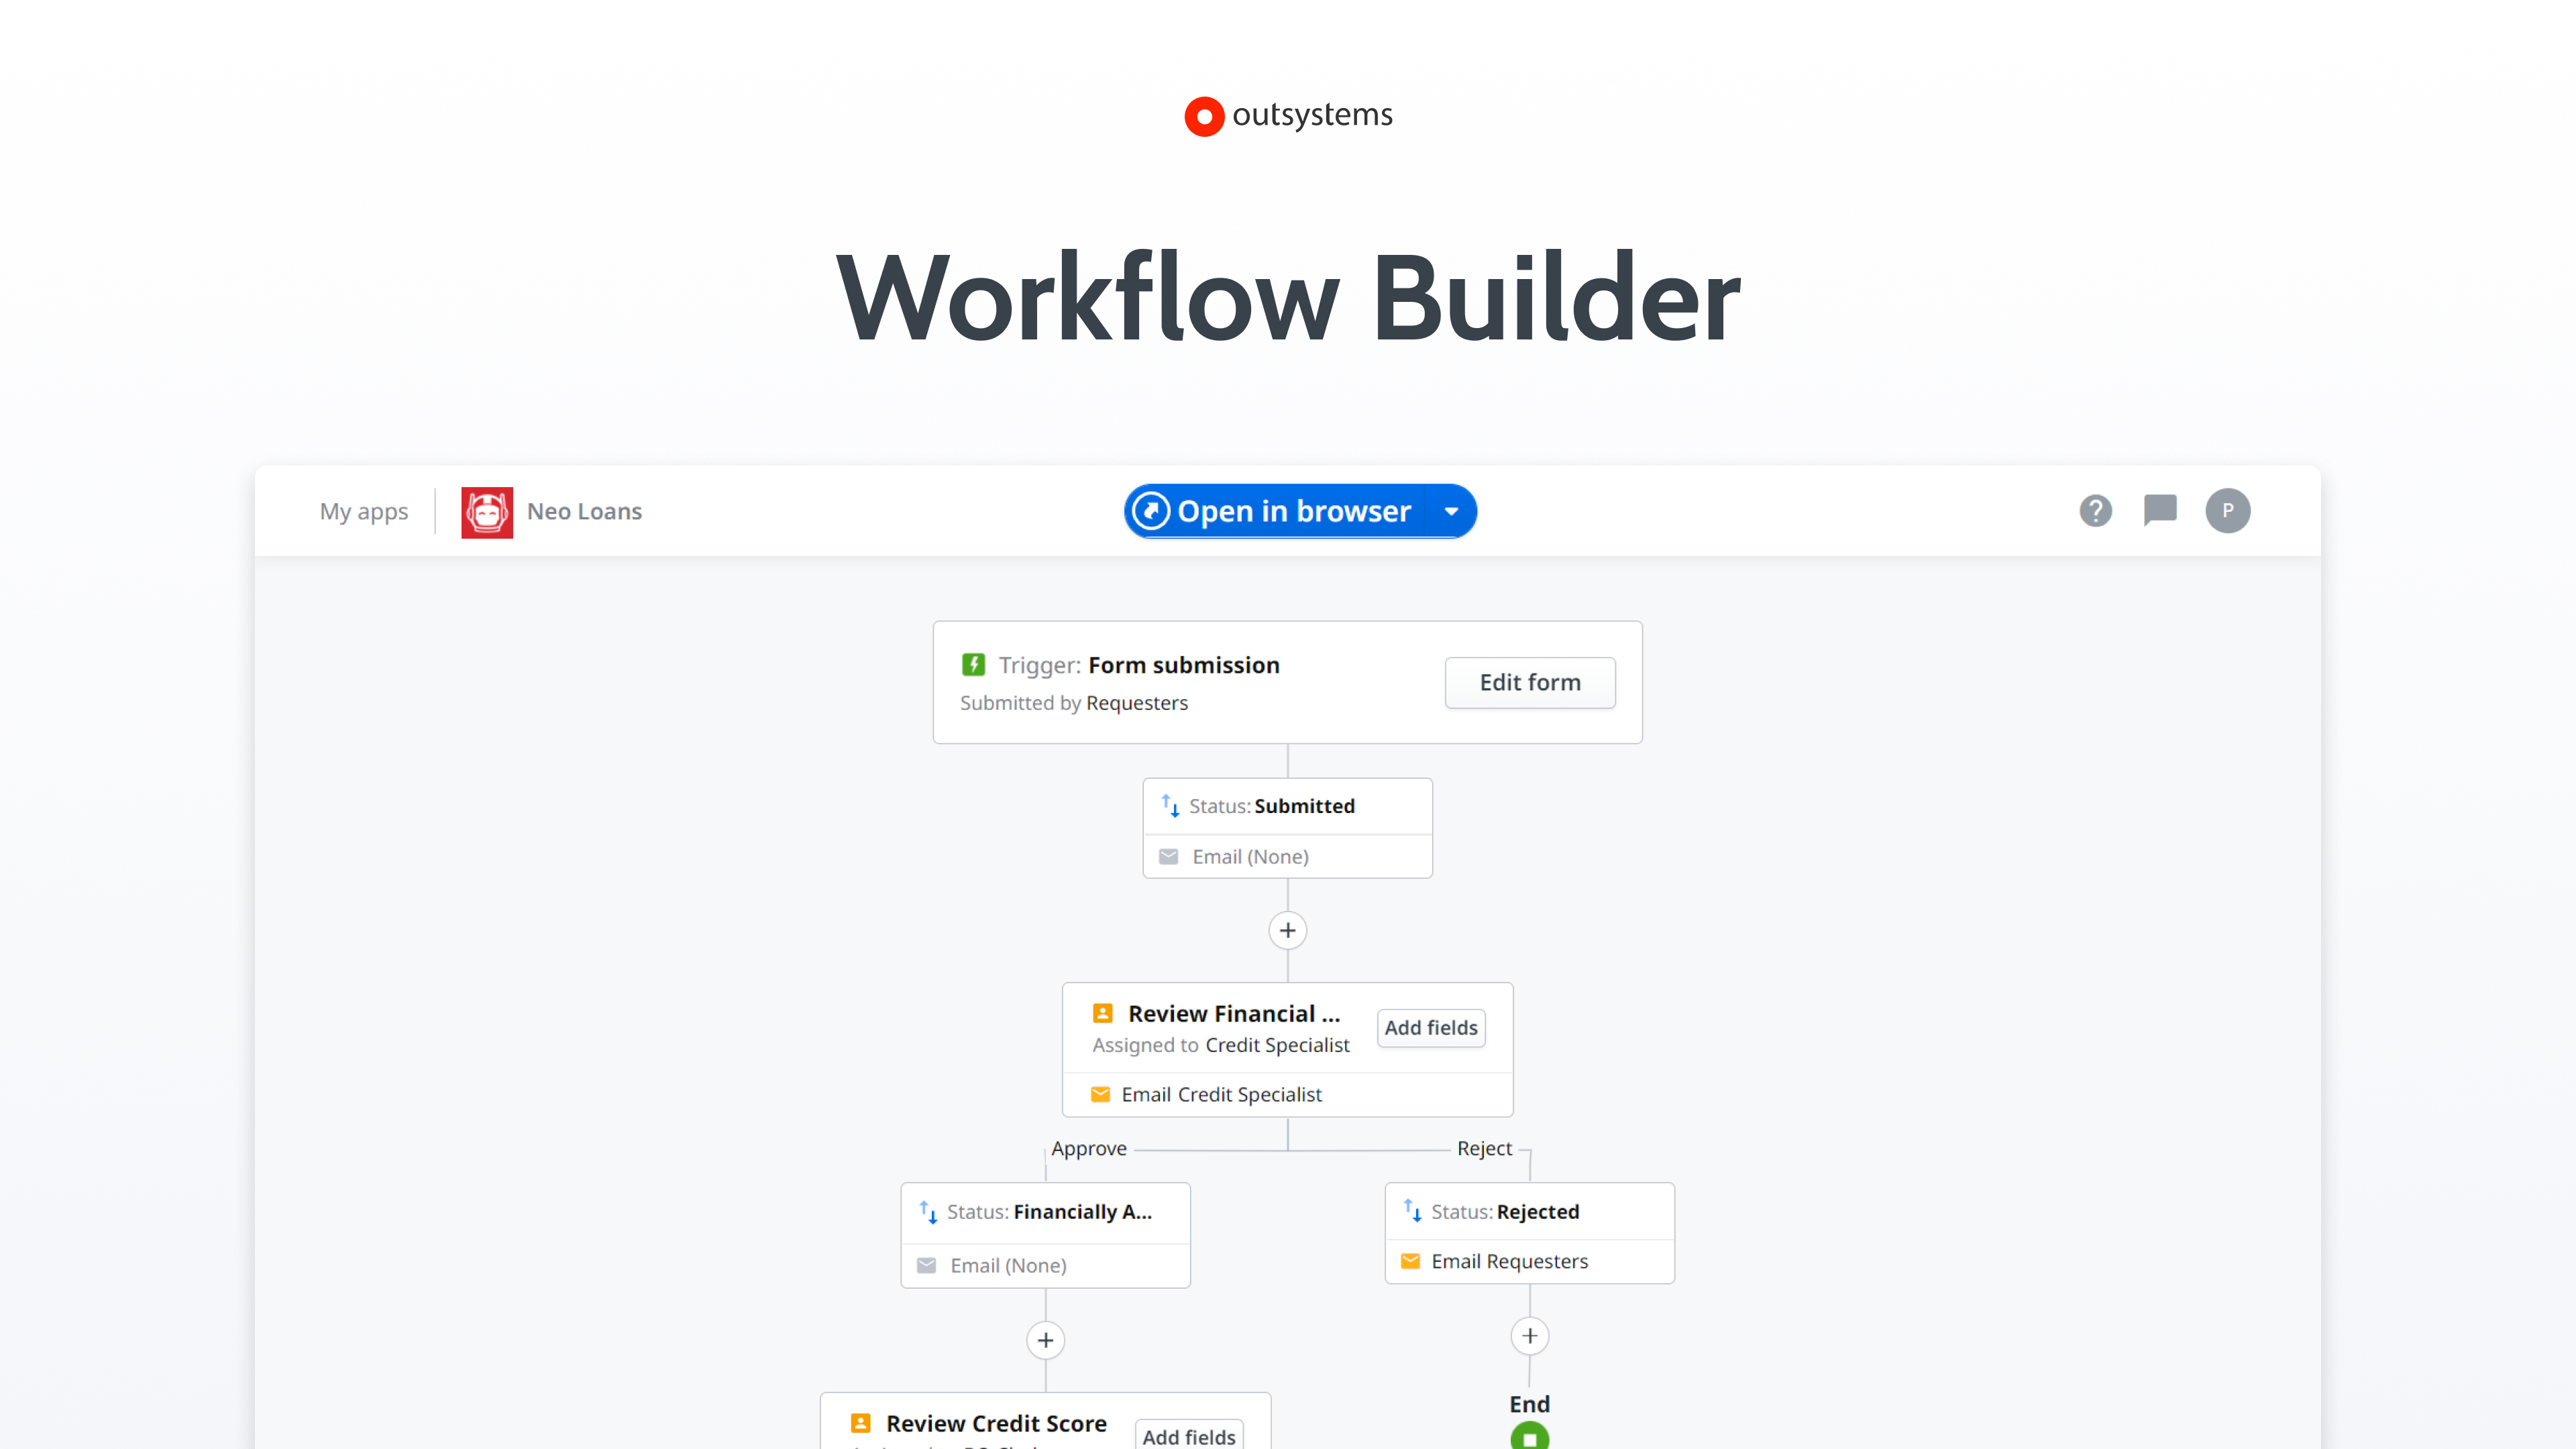 Workflow Builder: Empower business experts to turn ideas into apps in minutes.